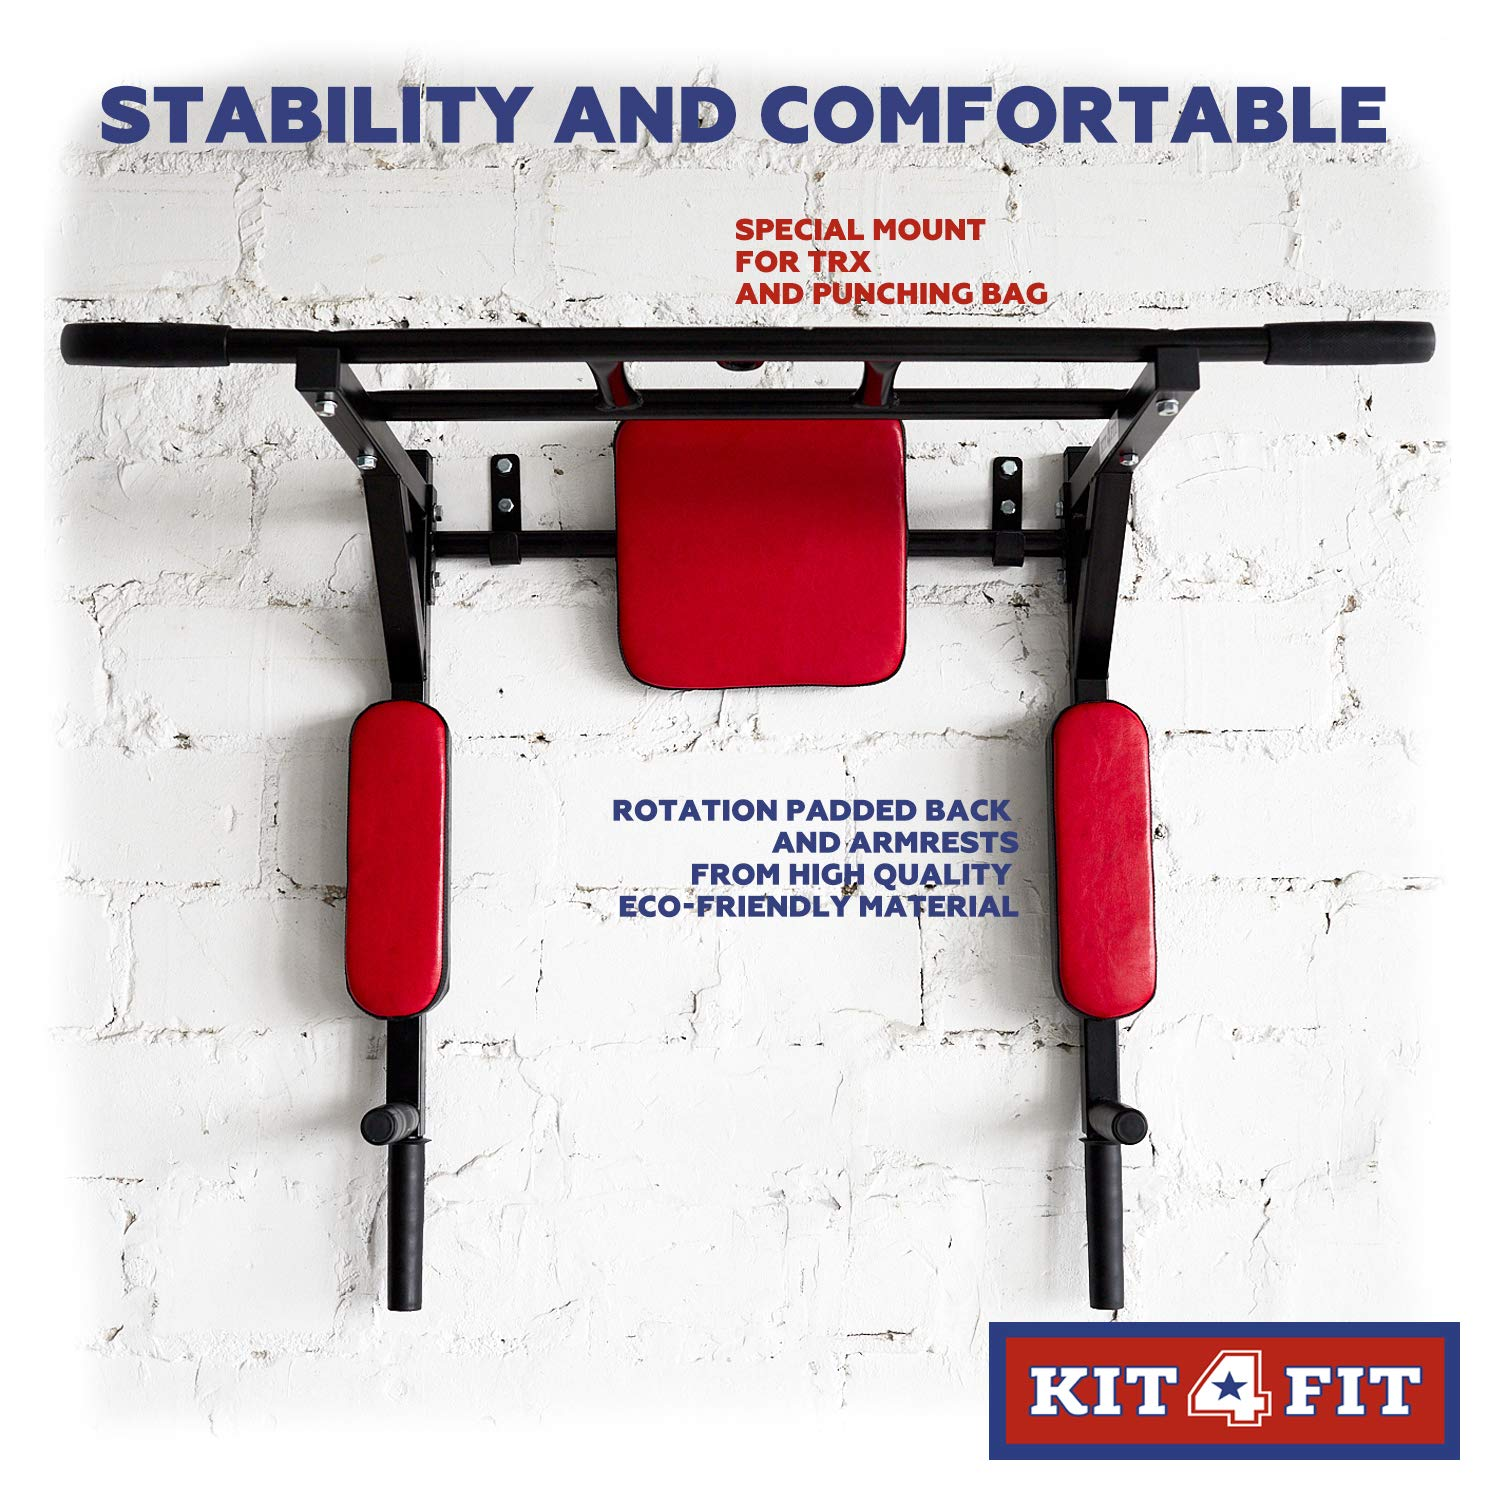 Wall Mounted Pull Up Bar and Dip Station with Vertical Knee Raise Station Indoor Home Exercise Equipment for Men Woman and Kids Great for Workout and Fitness (Red) by Kit4Fit (Image #4)